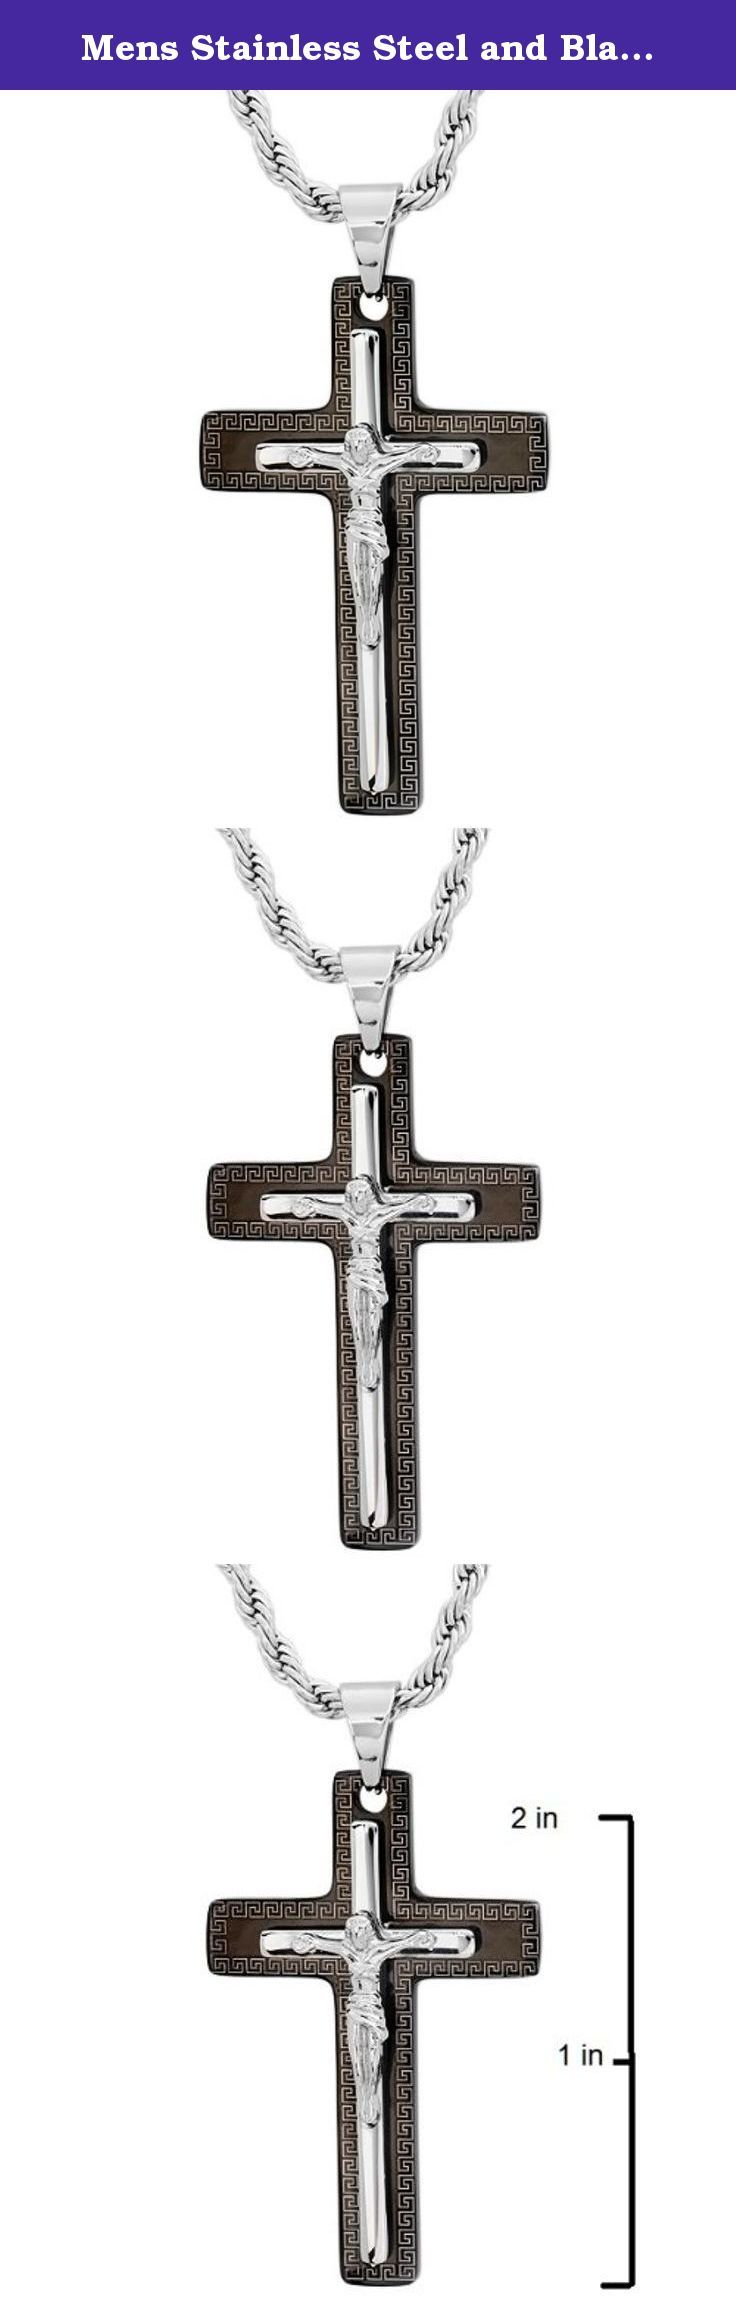 Mens Stainless Steel and Black Crucifix Pendant-Nacklace on a 30 in. Stainless Steel Rope Chain. Mens Stainless steel and black cross measures over 2 1/2 inches including the bale. This is a solid piece of stainless steel jewelry and comes on a 30 inch stainless steel rope chain.